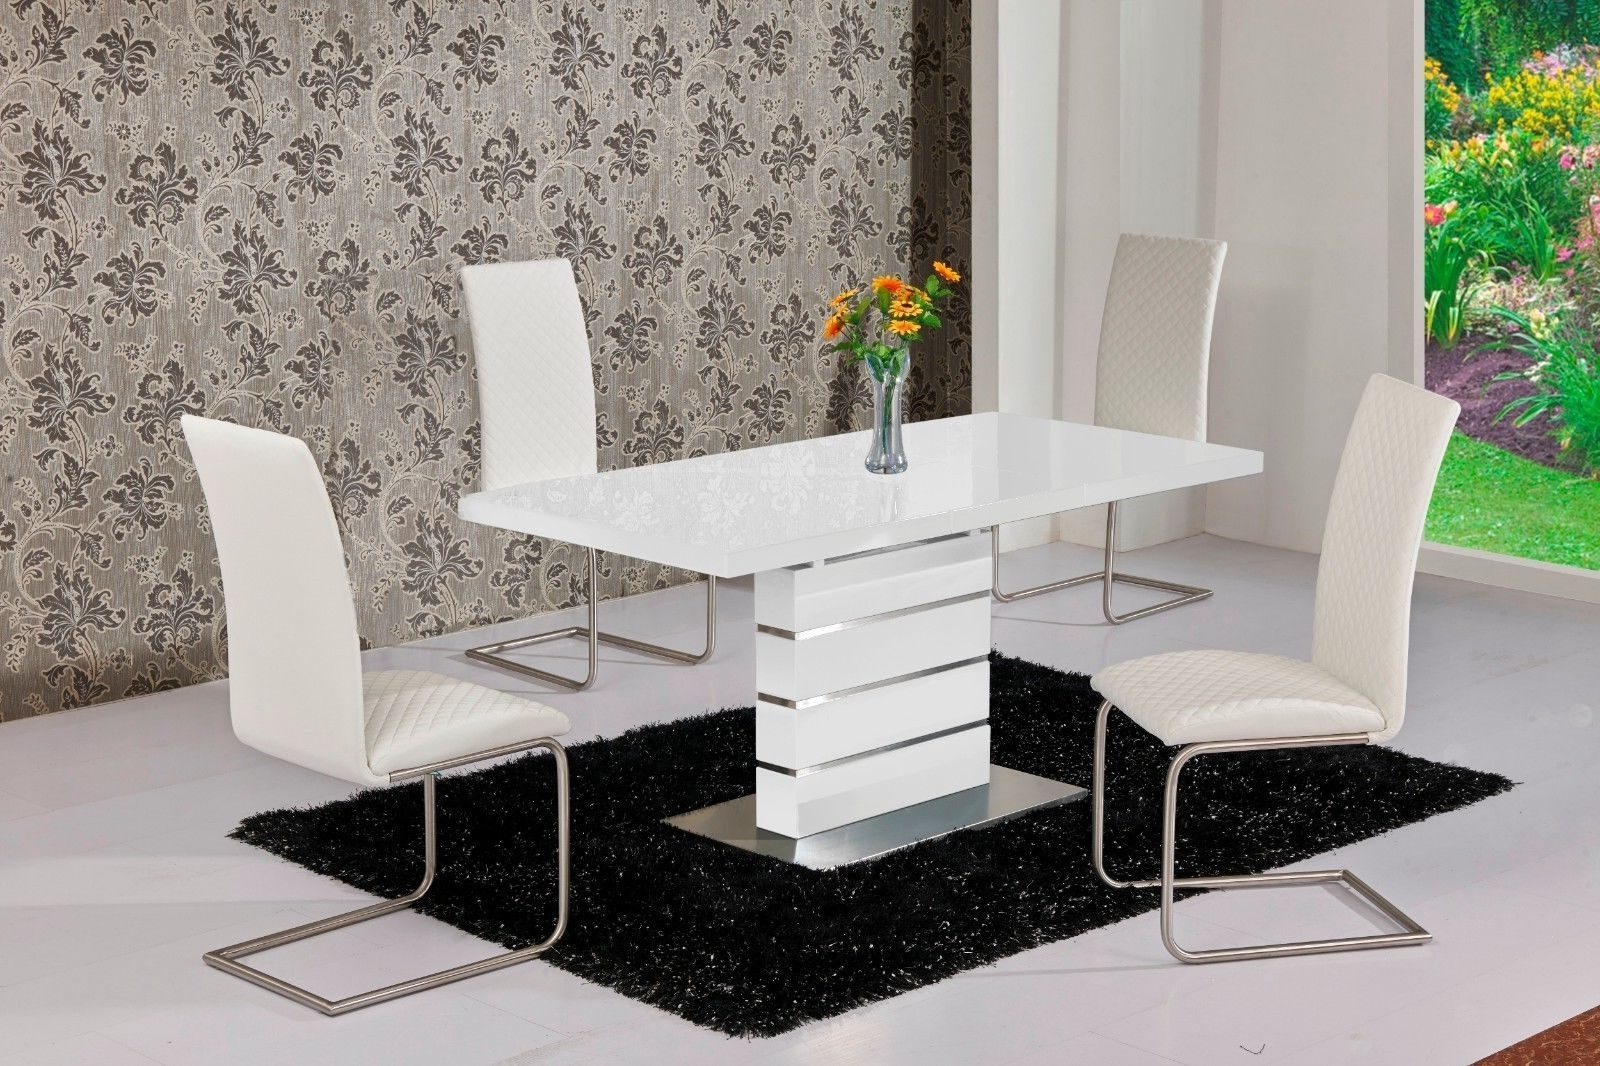 Mace High Gloss Extending 120 160 Dining Table & Chair Set – White In Latest Black Gloss Dining Tables And 6 Chairs (View 14 of 25)